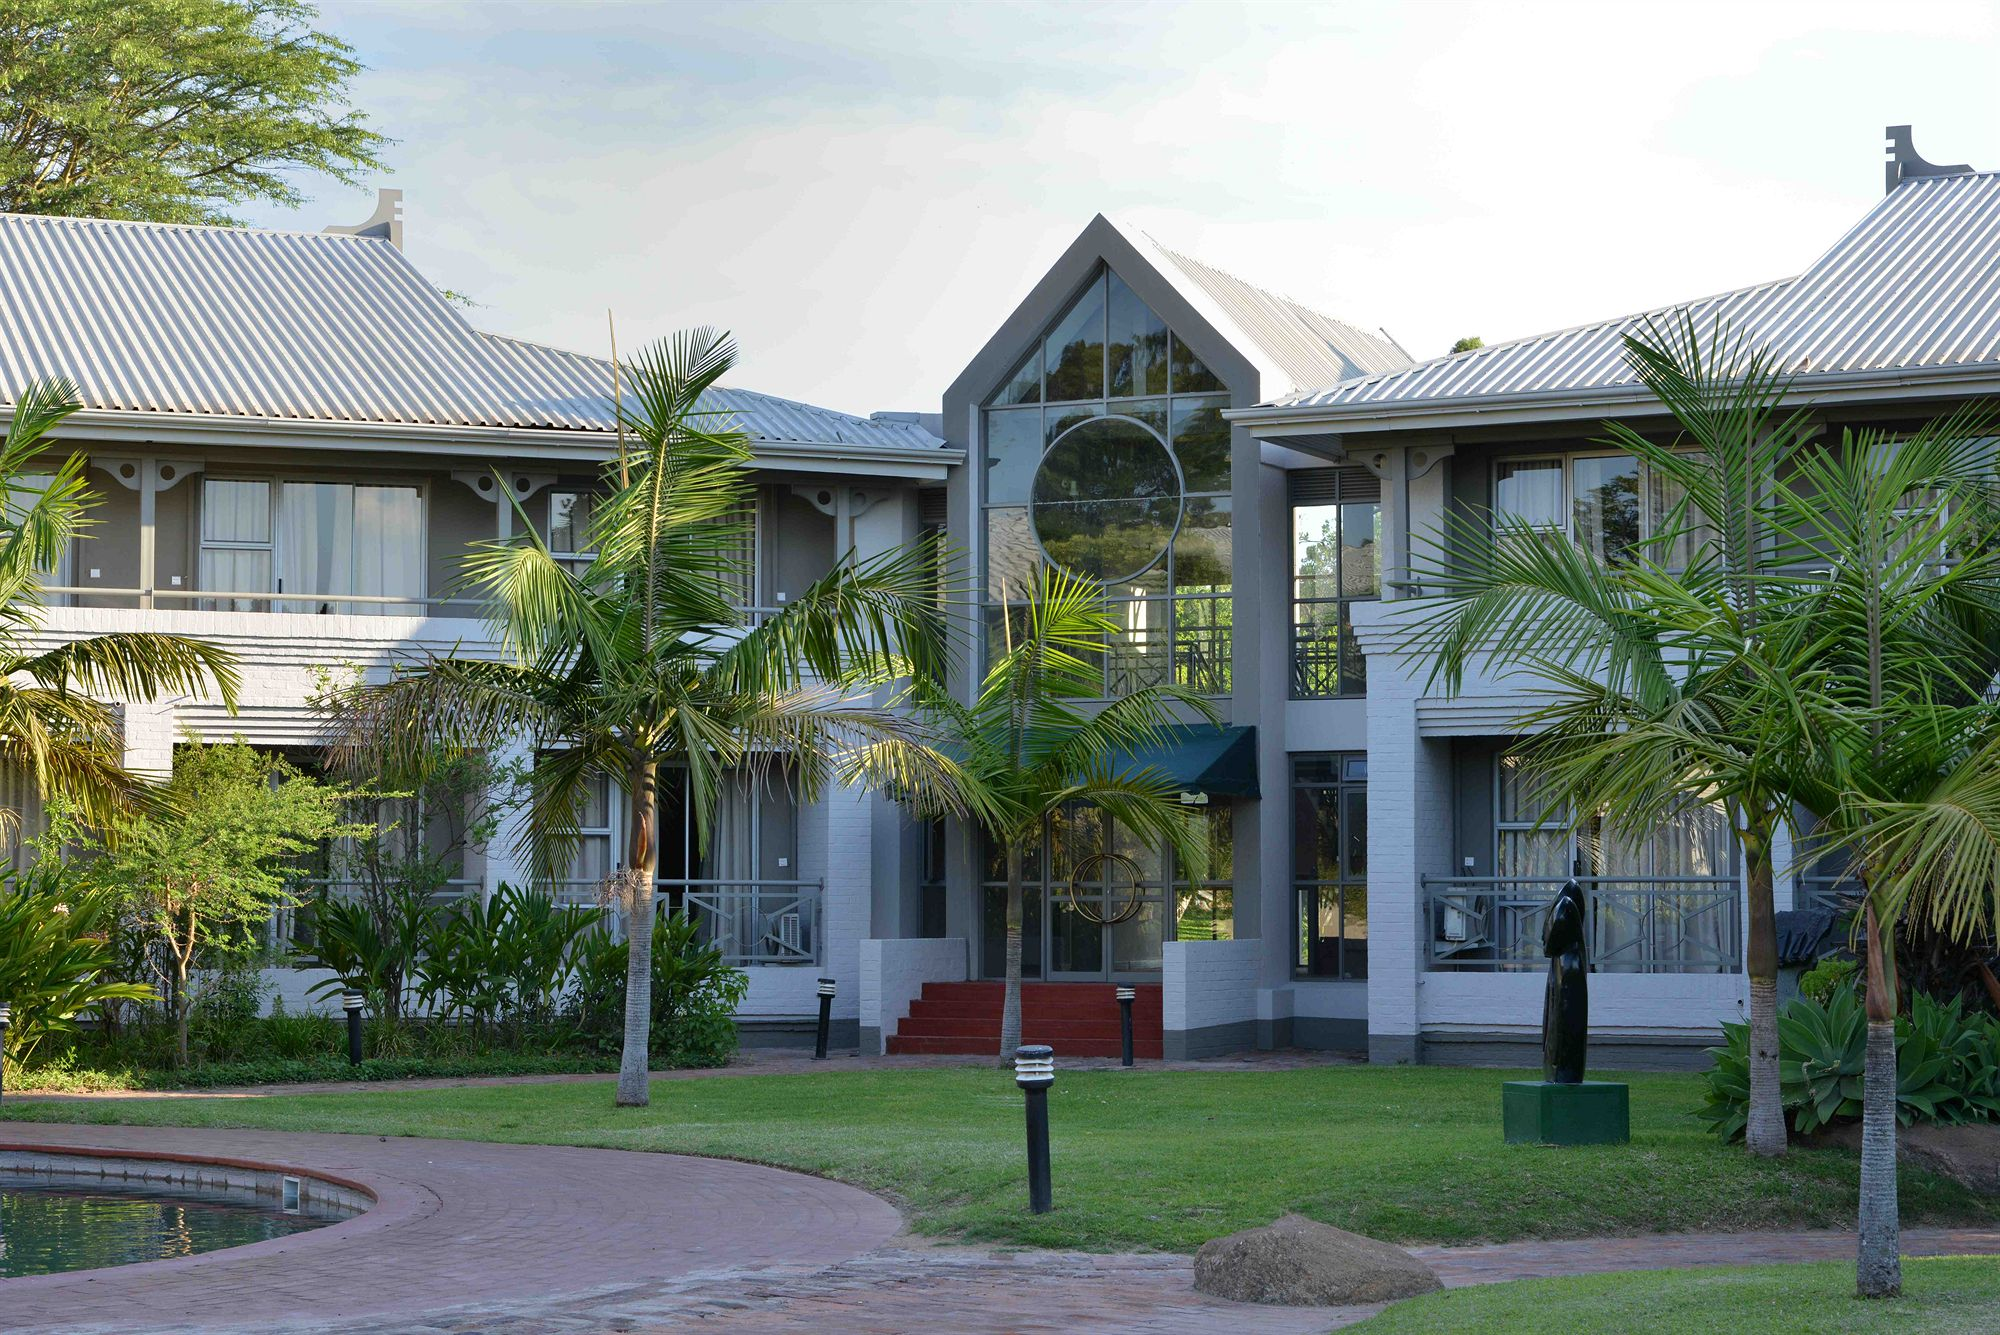 Harare hotels and lodges